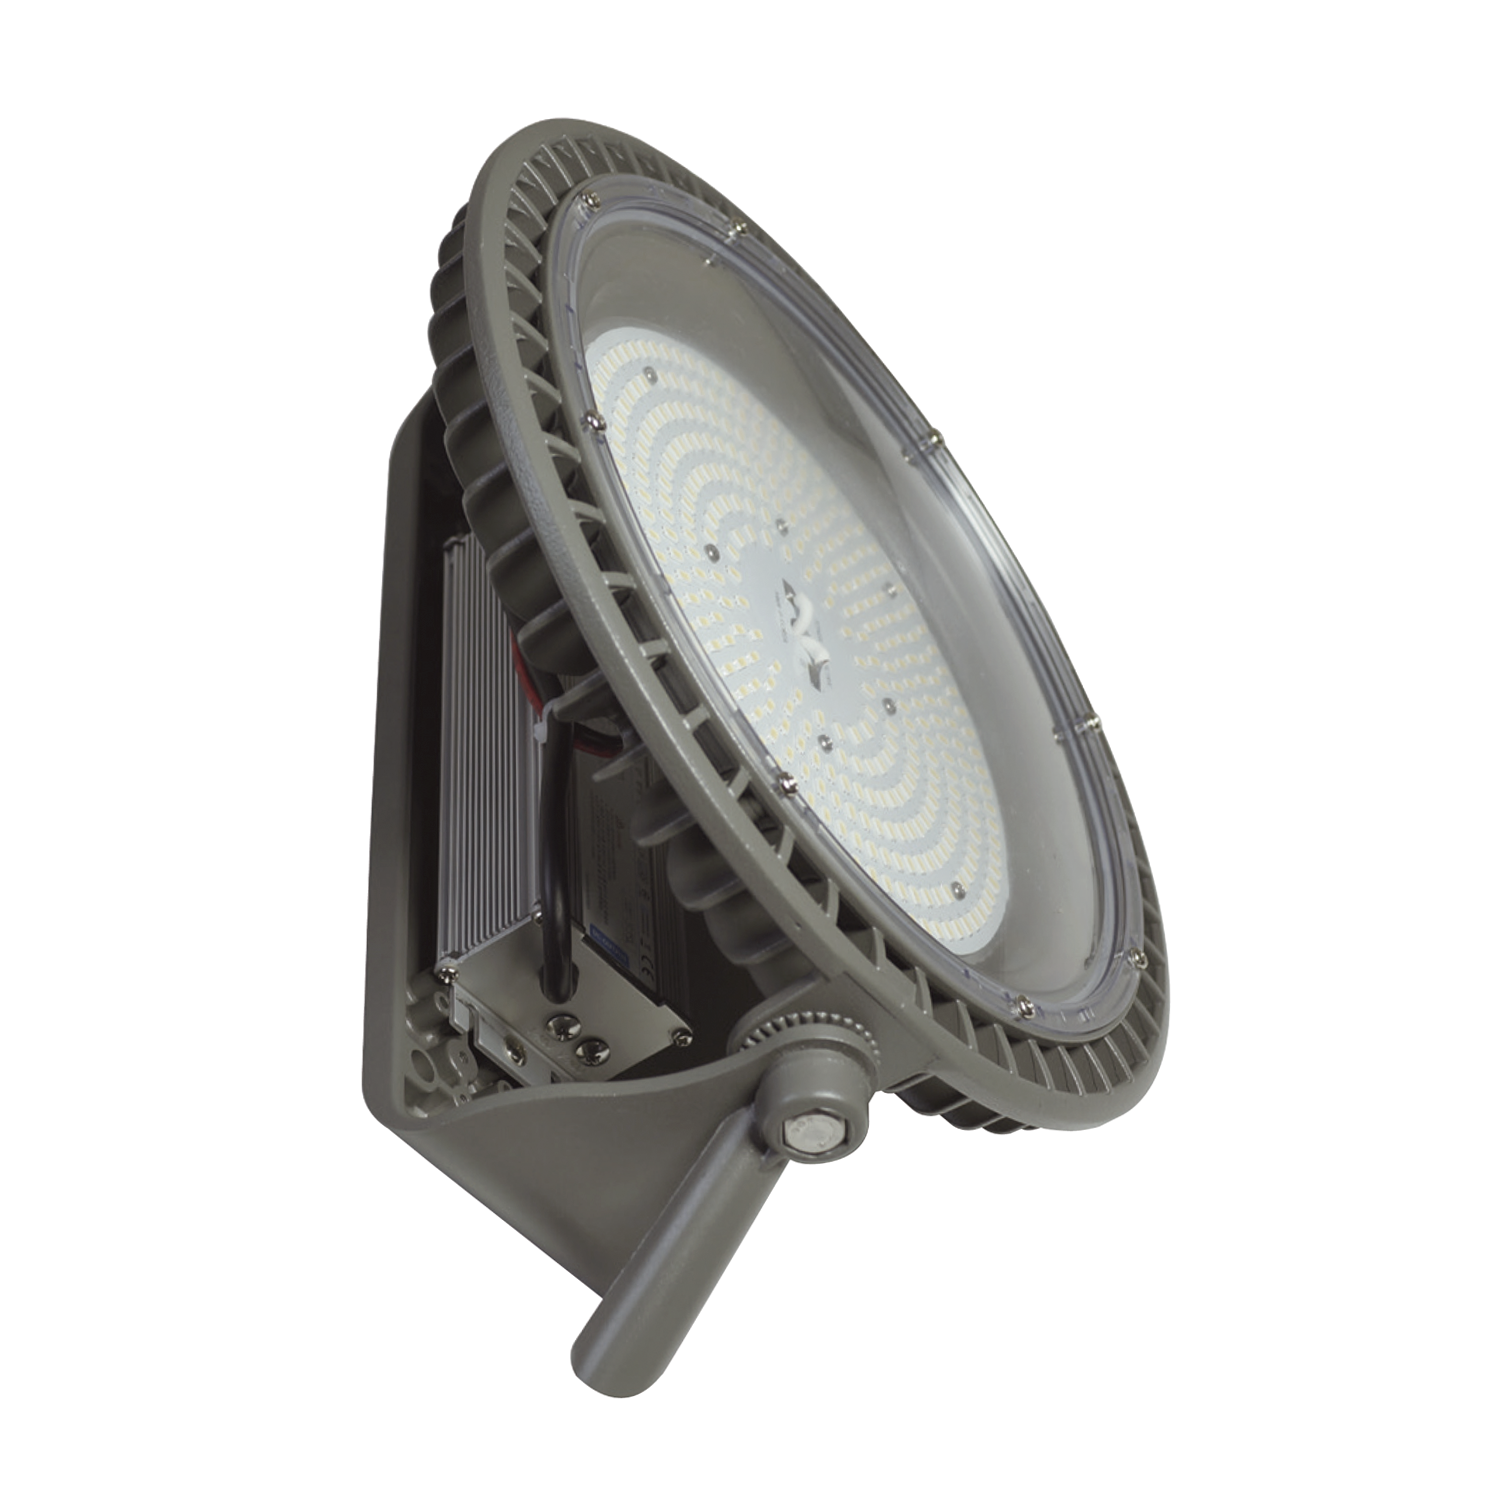 Led Light Fixture Nsn: LED LIGHTING Manufacturer